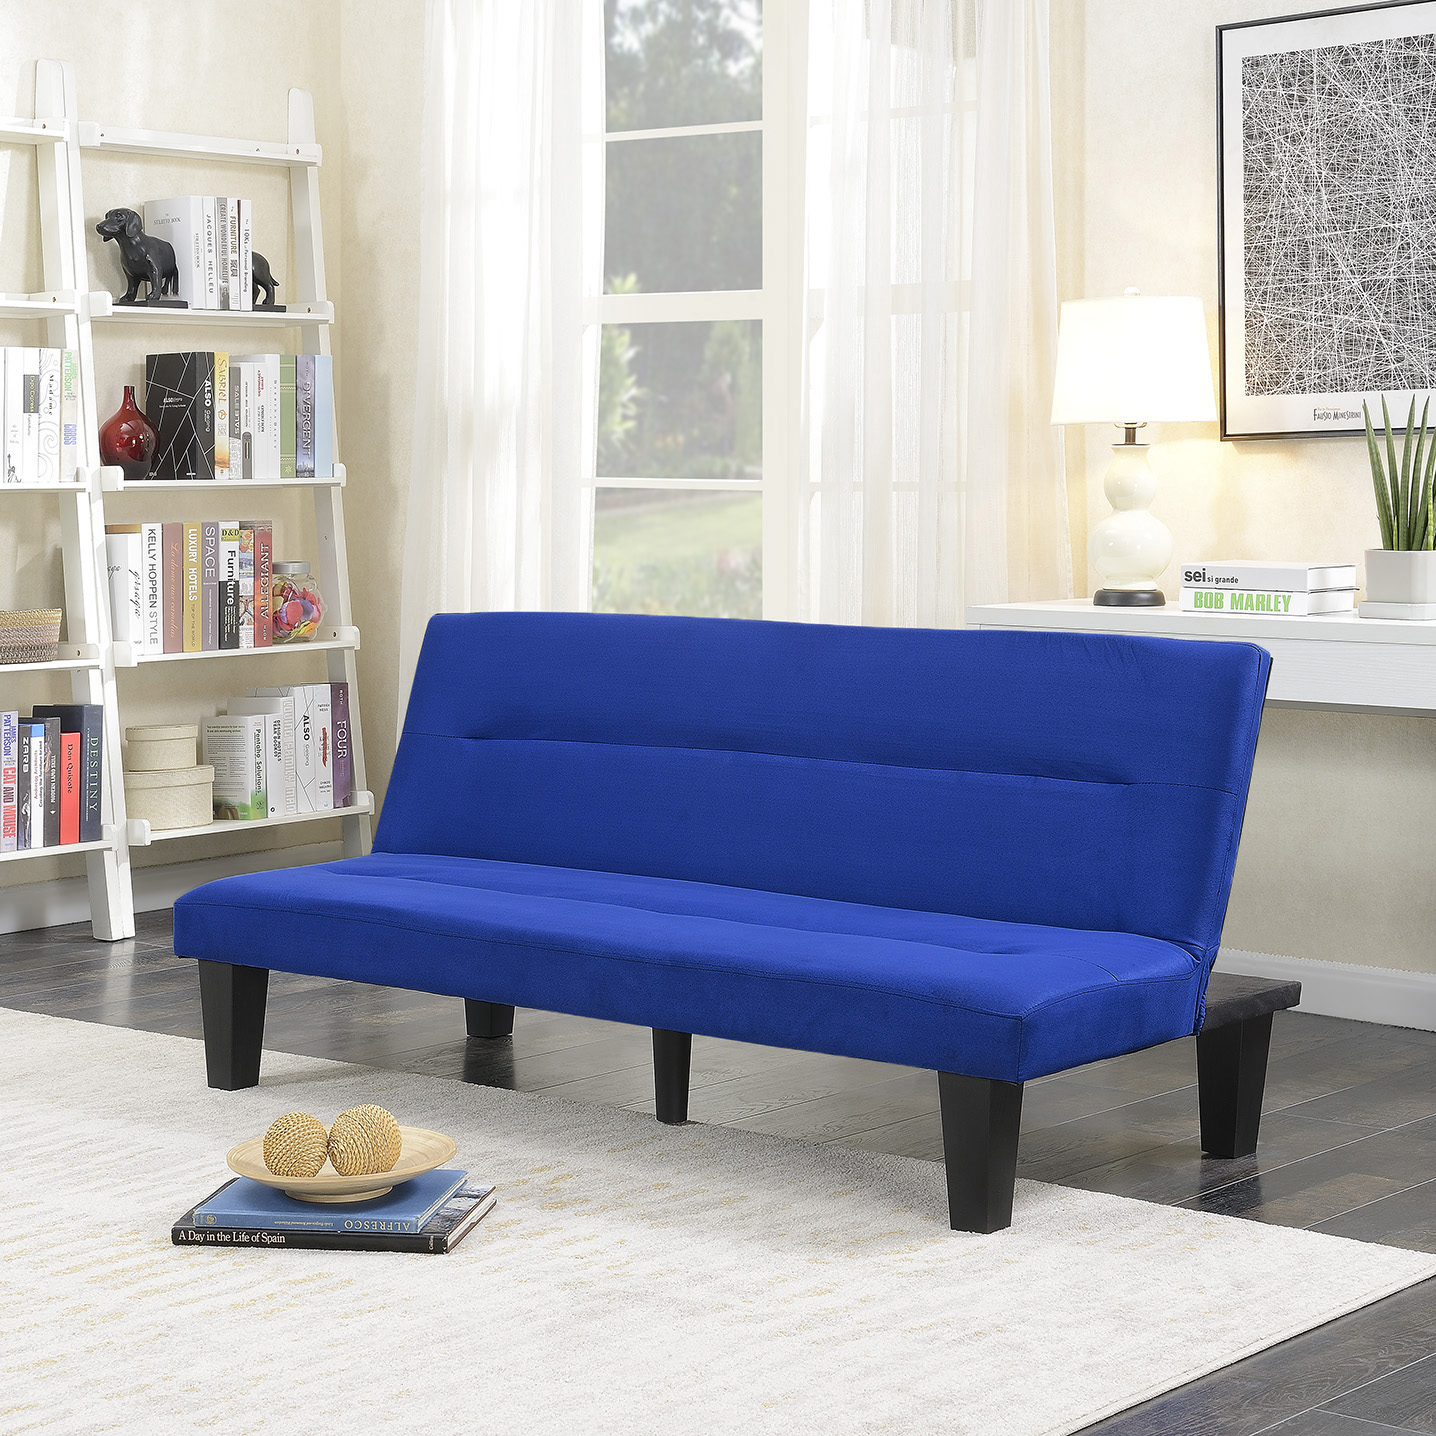 Microfiber Futon Folding Couch Sofa Bed Sleep Recliner Lounger Low Seat Blue 846183162599 Ebay